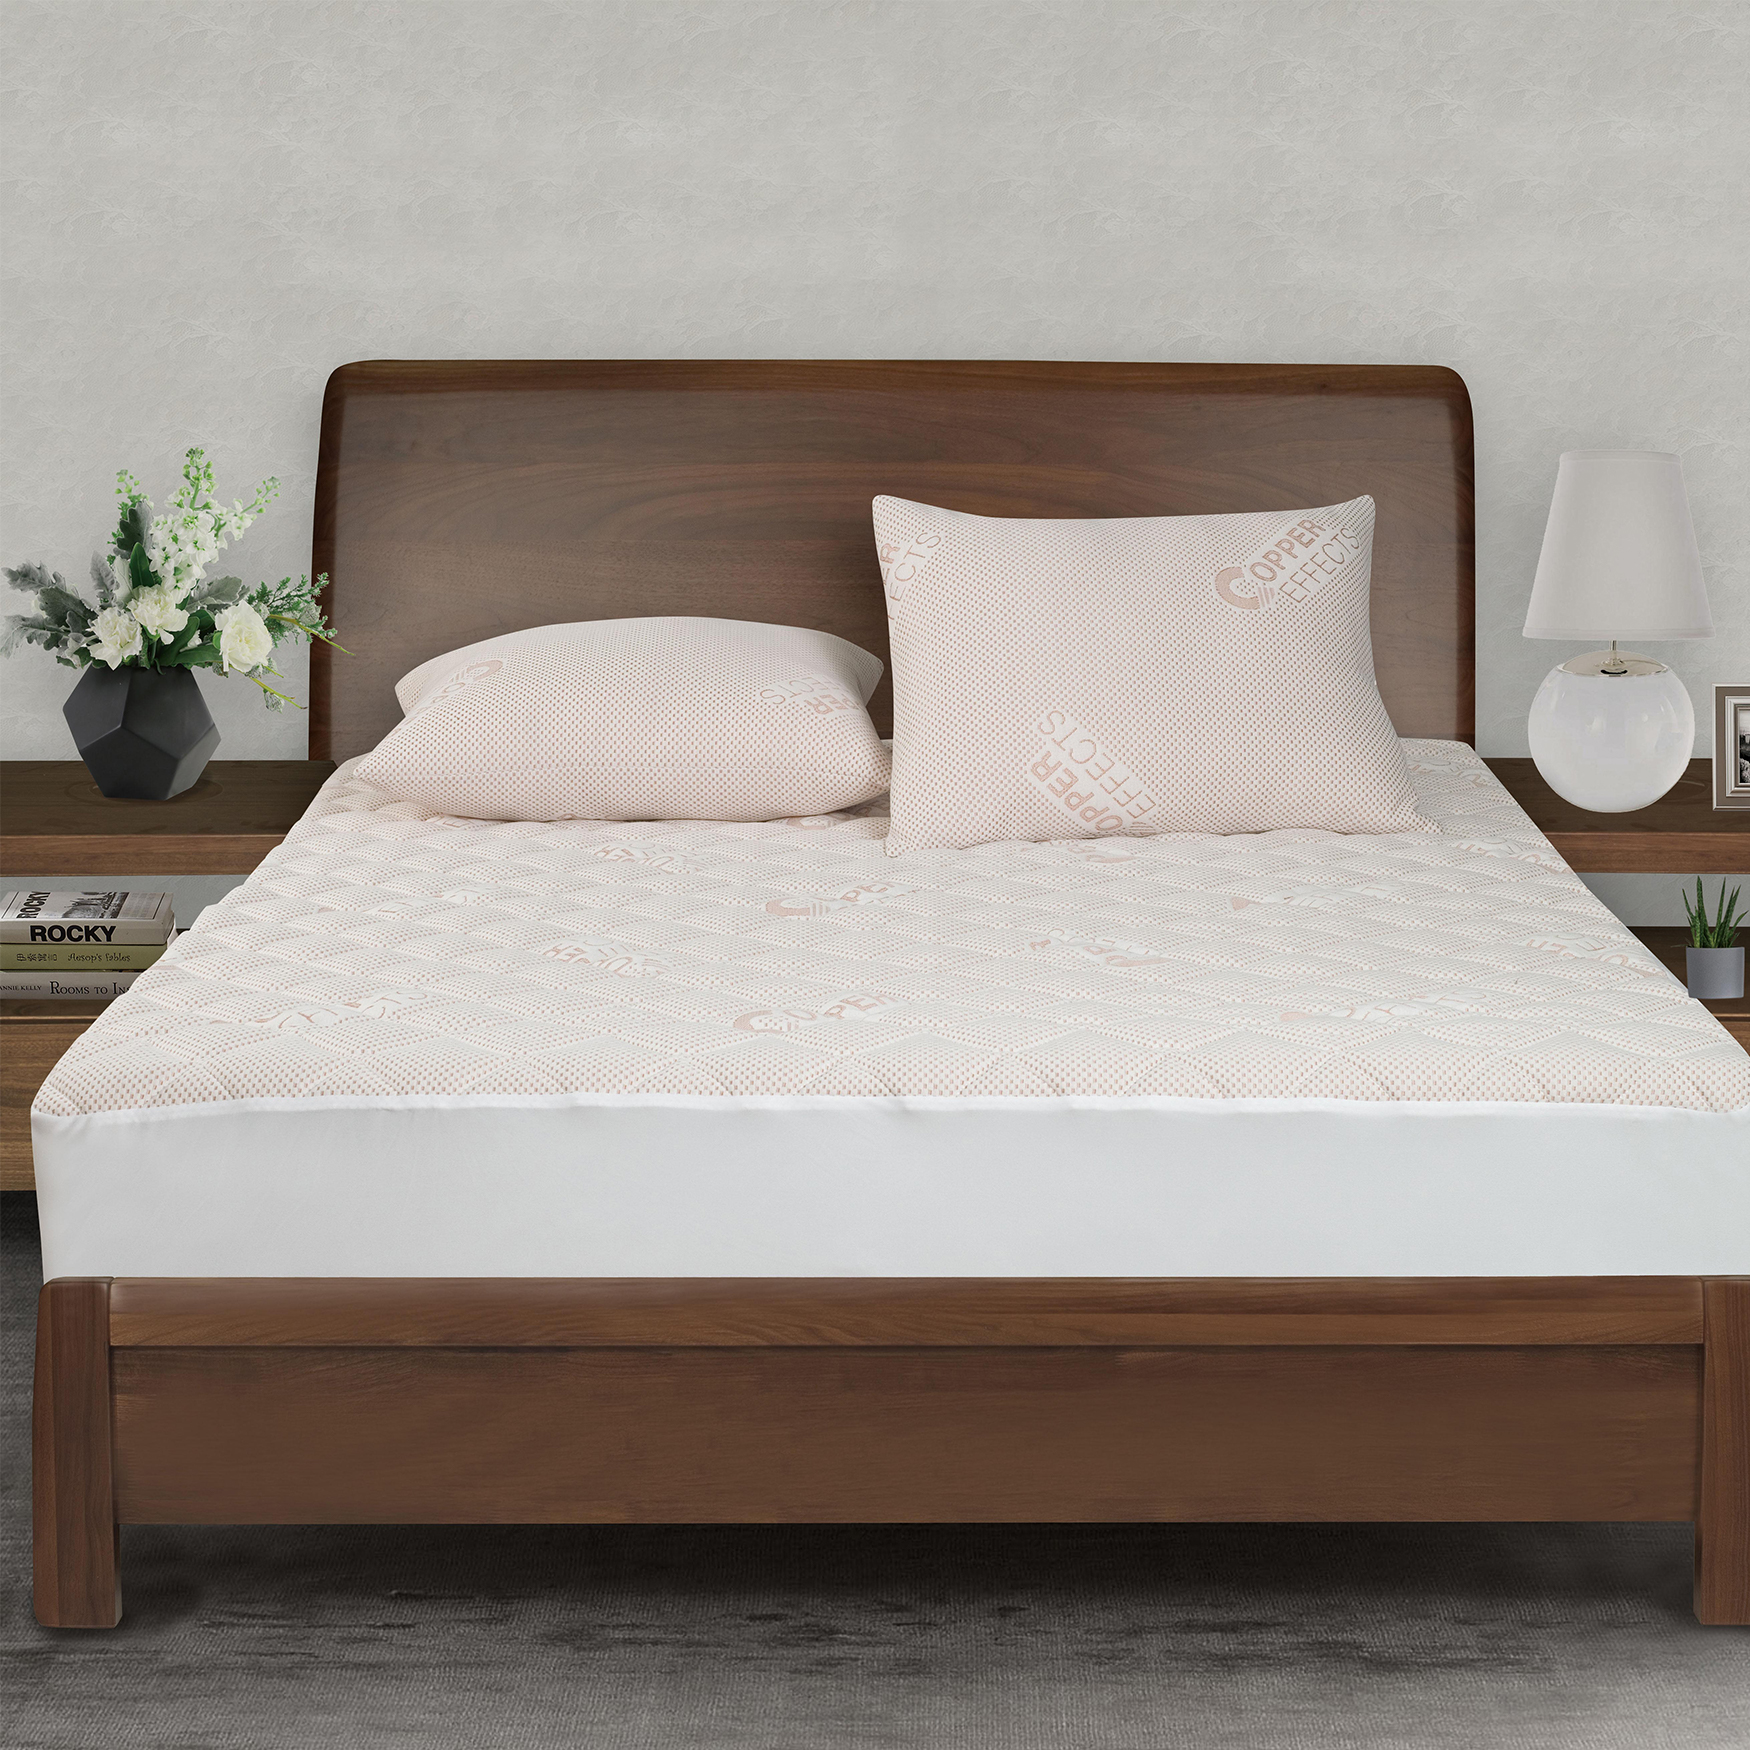 All-In-One Copper Effects Antimicrobial Fitted Mattress Pad, Twin,